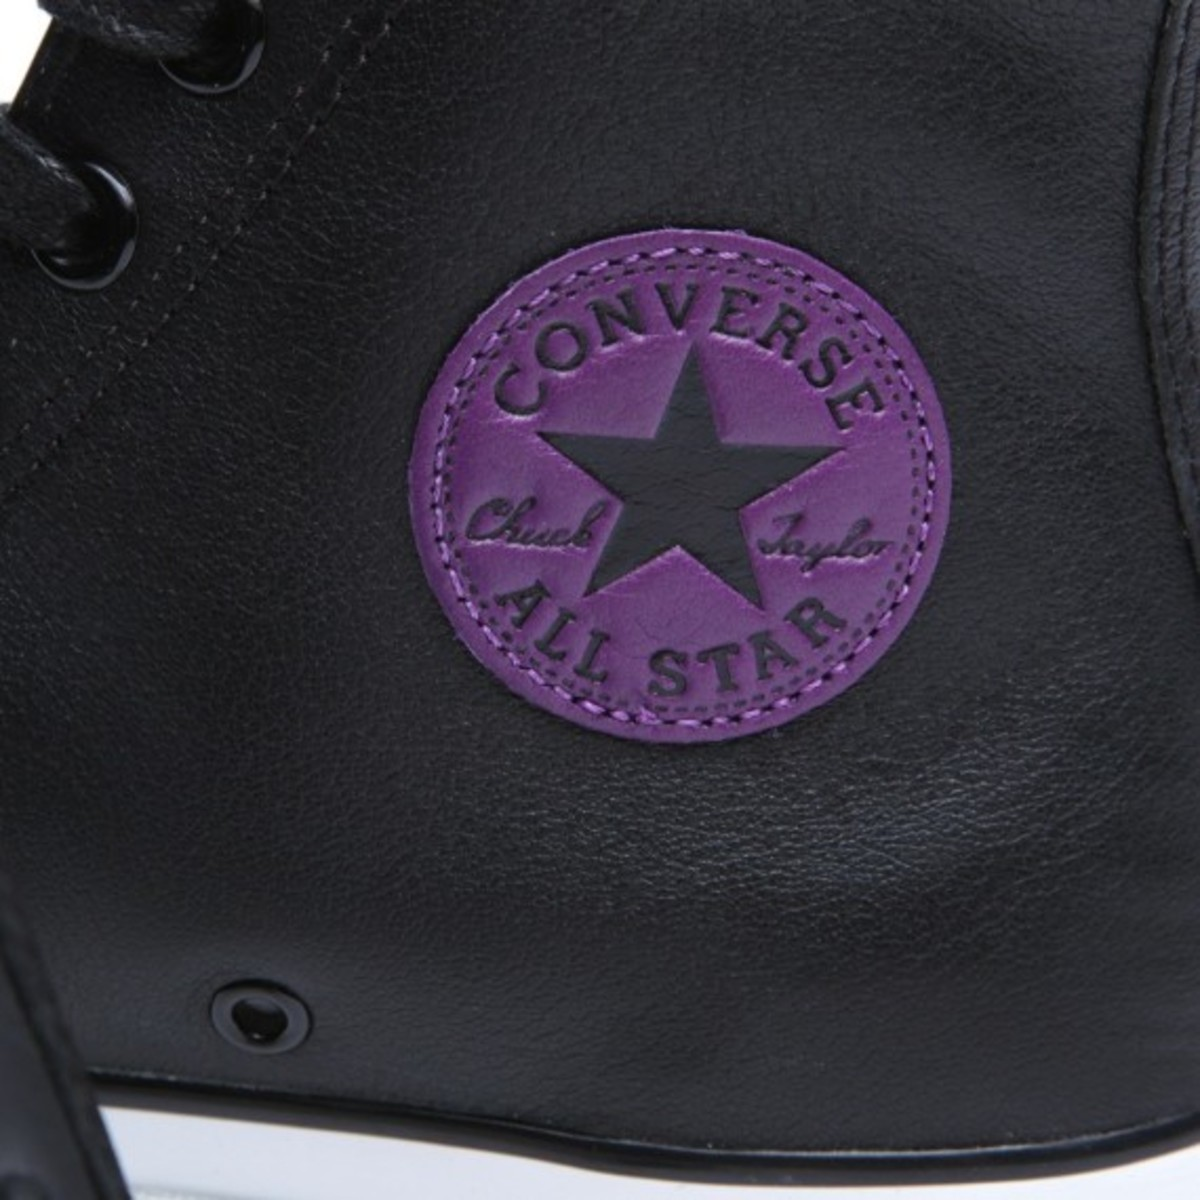 black-sabbath-converse-chuck-taylor-all-star-70s-master-of-reality-08